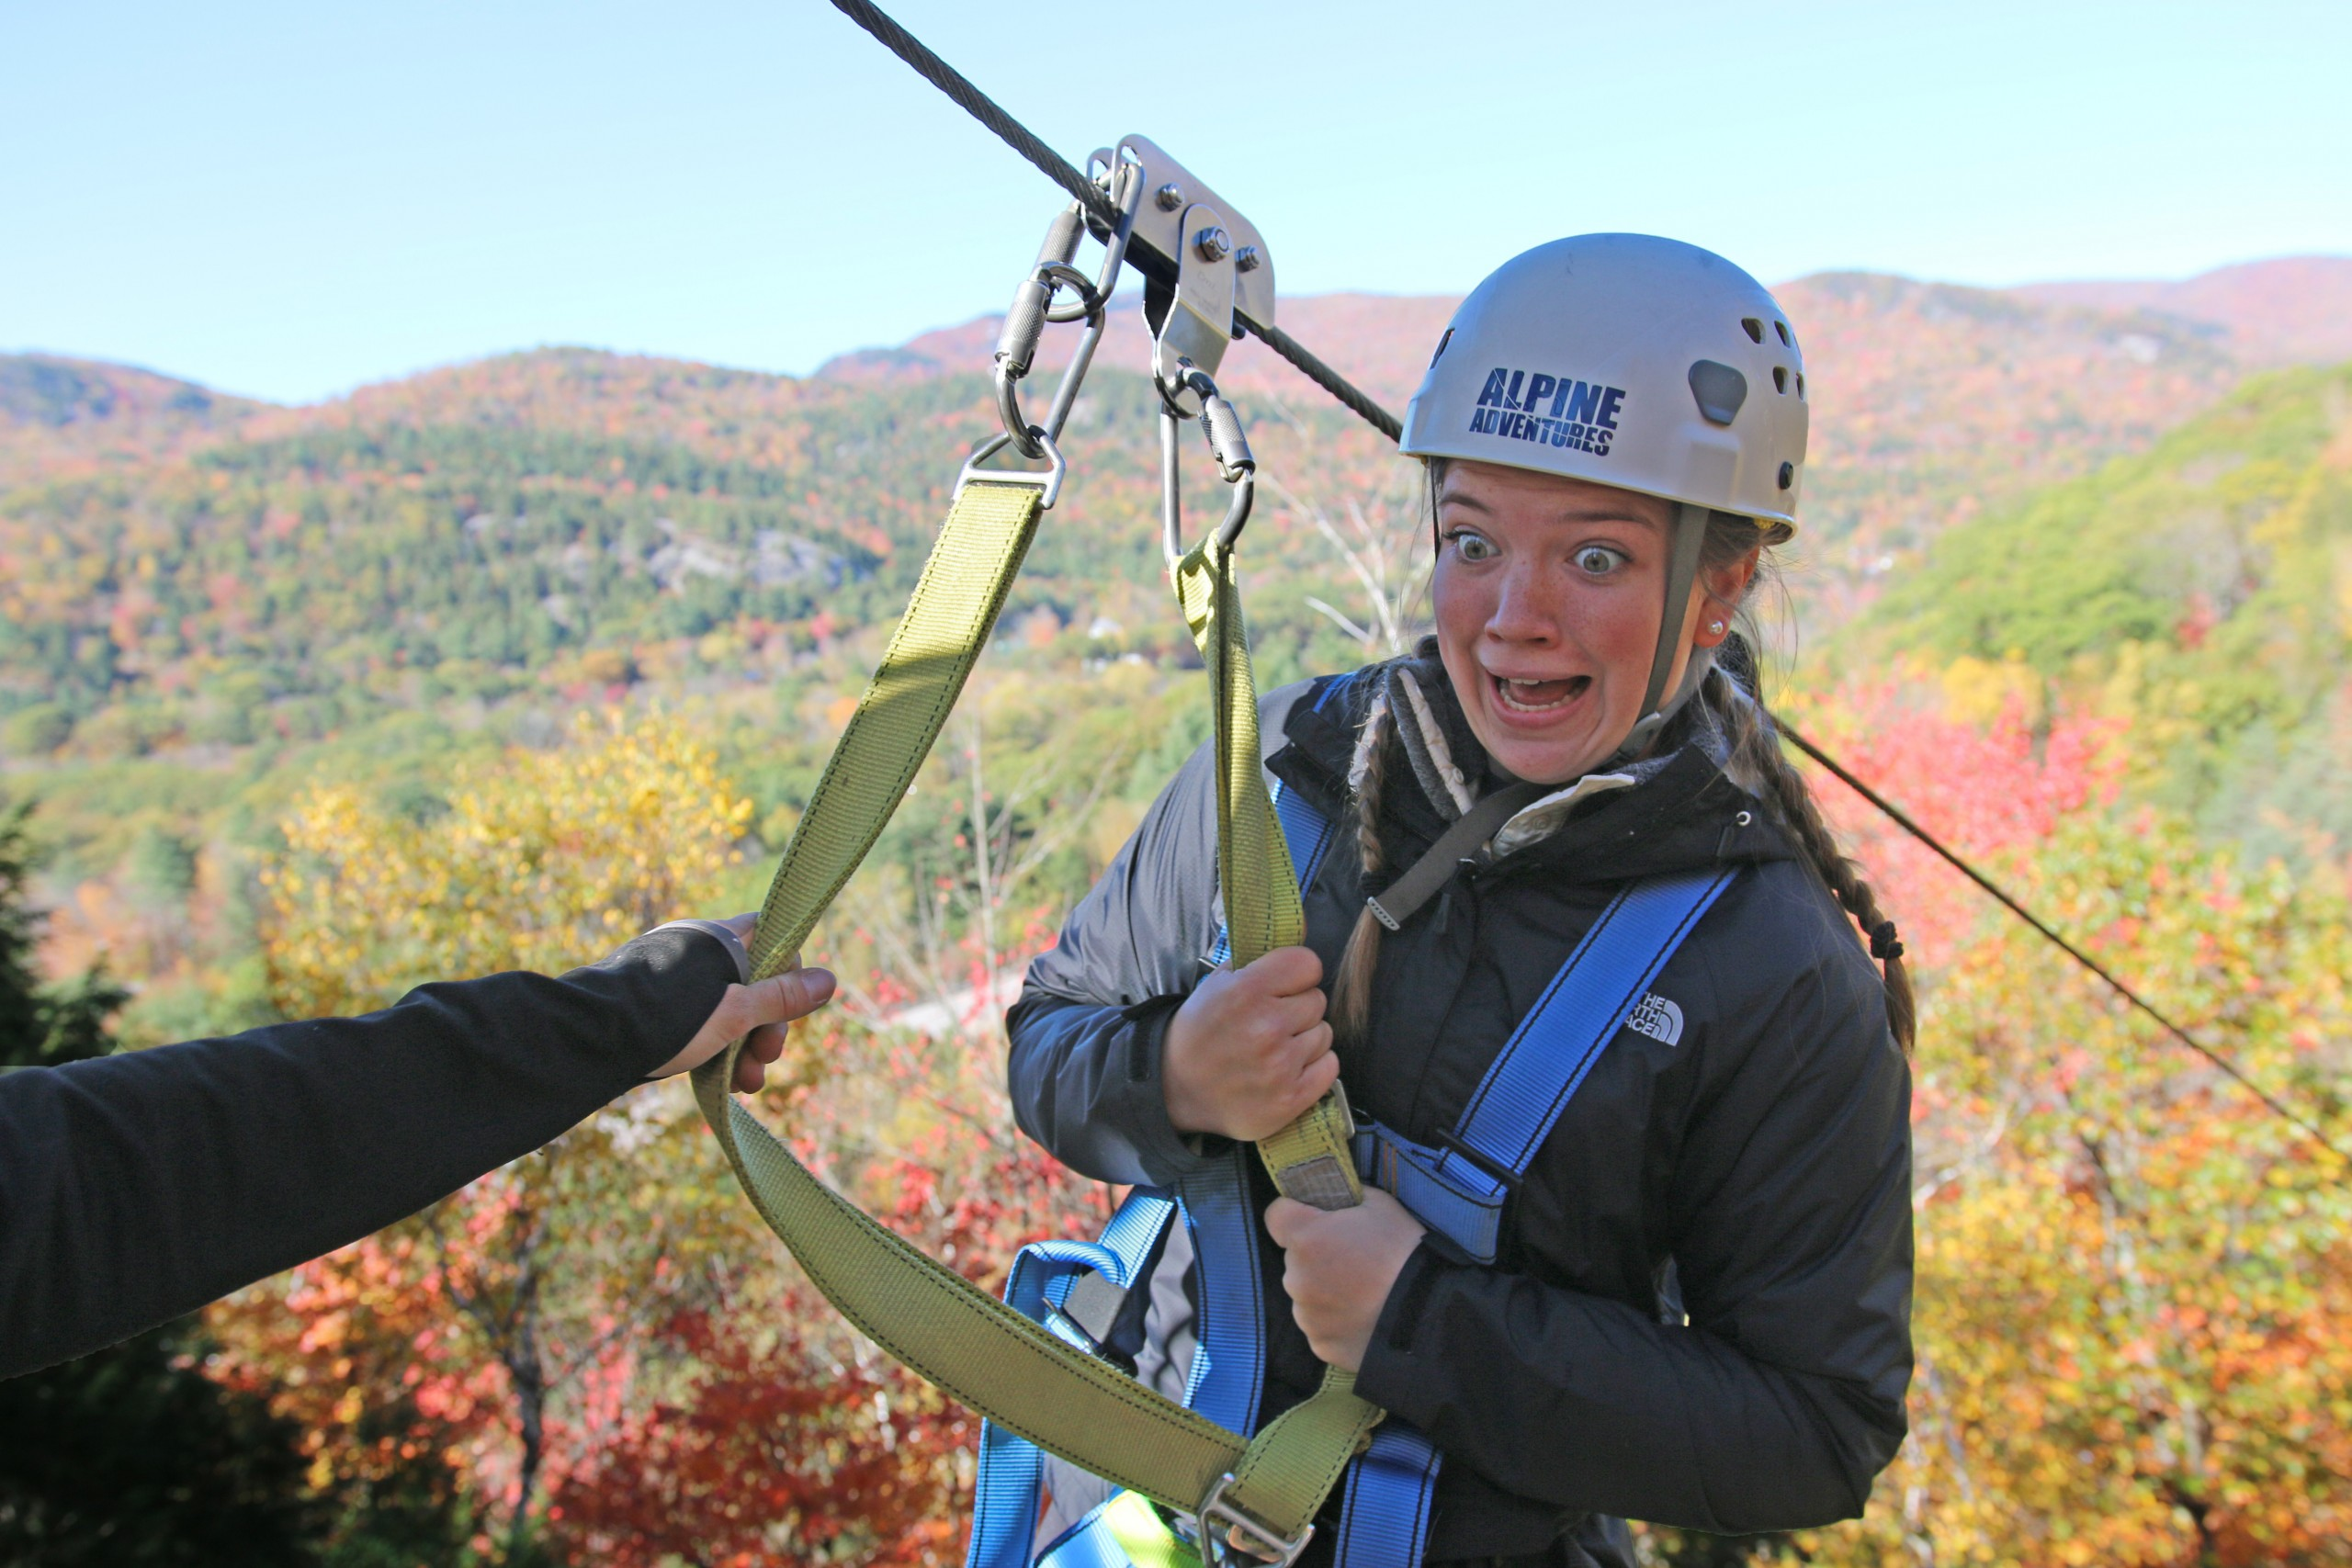 Scared or Excited for Ziplining